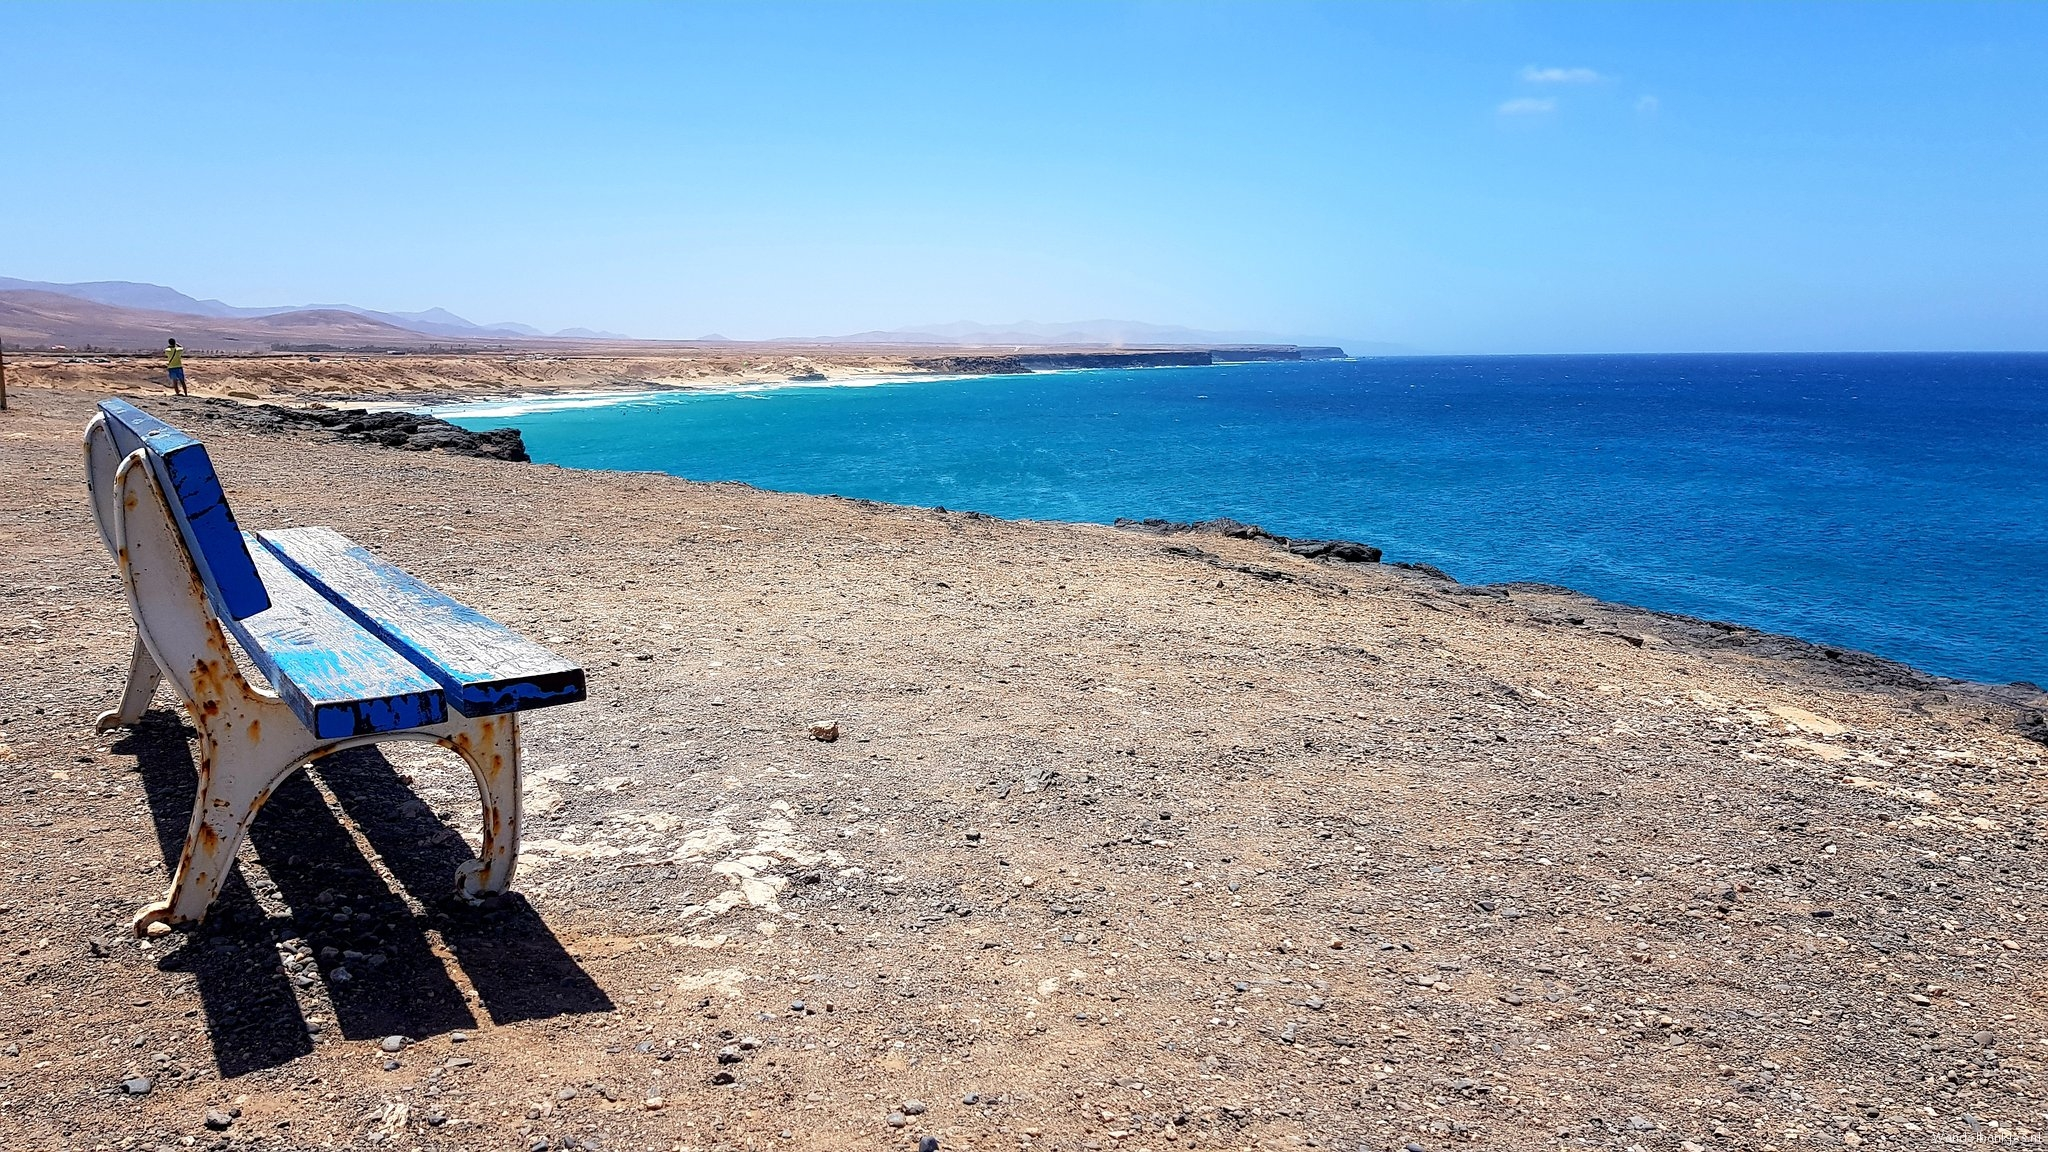 rt-hansterheijne-fuerteventura-elcotillo-walking-benches-walkersbenches-myfavebench-https-t-co-adjppog19b